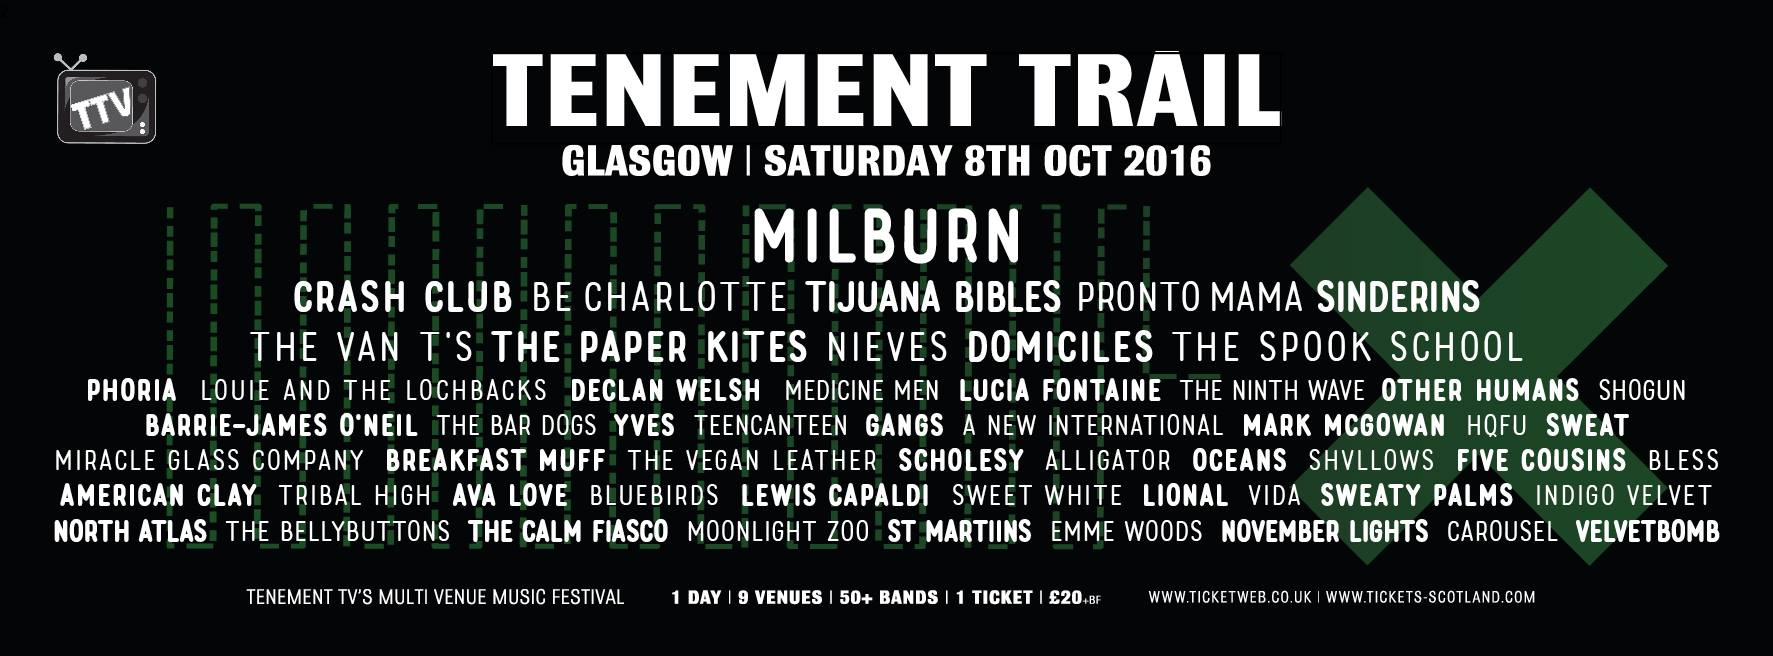 A&A's 5 picks for Tenement Trail